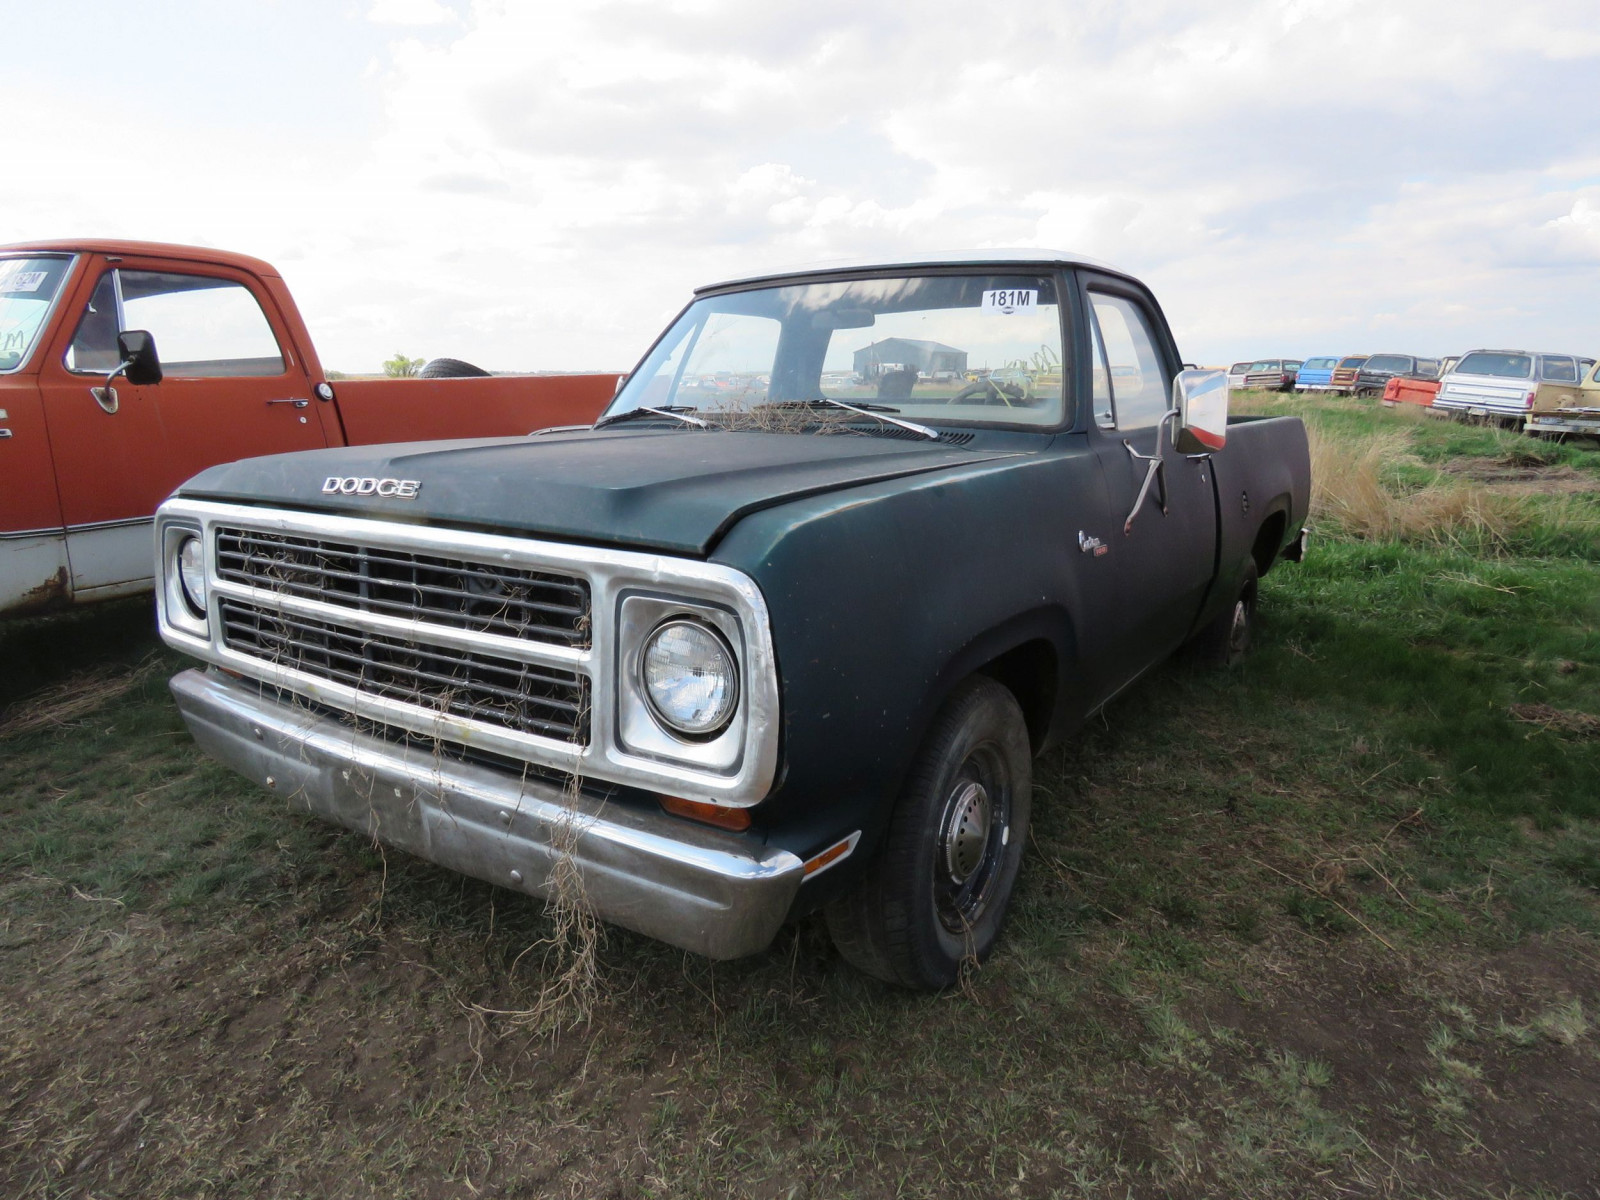 1979 Dodge D100 Pickup - Image 1